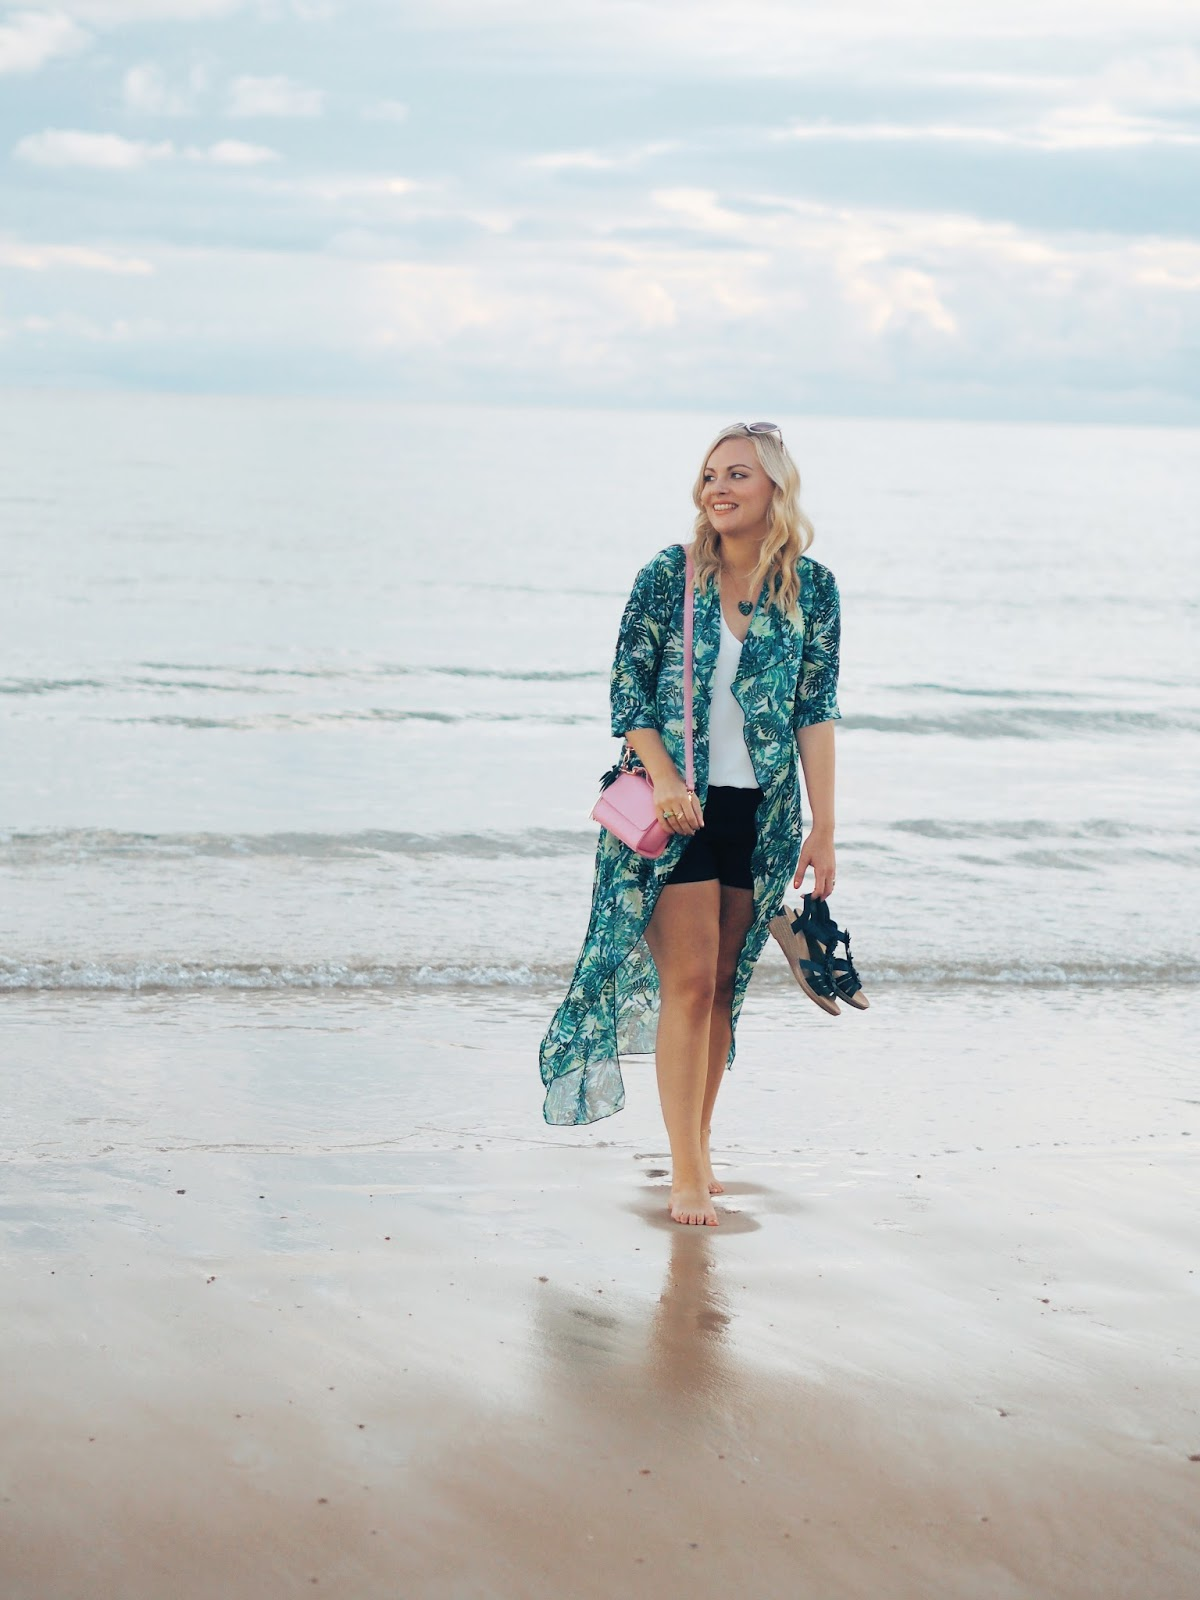 Palm Prints & The Most Perfect Beach, Katie Kirk Loves, UK Blogger, UK Fashion Blogger, Style Blogger, Style Influencer, Boohoo Style, St Brelades Bay, Jersey, Travel Blogger, Channel Islands, Outfit Post, Outfit Of The Day, Skinnydip London, Palm Print Fashion, And Mary Jewellery